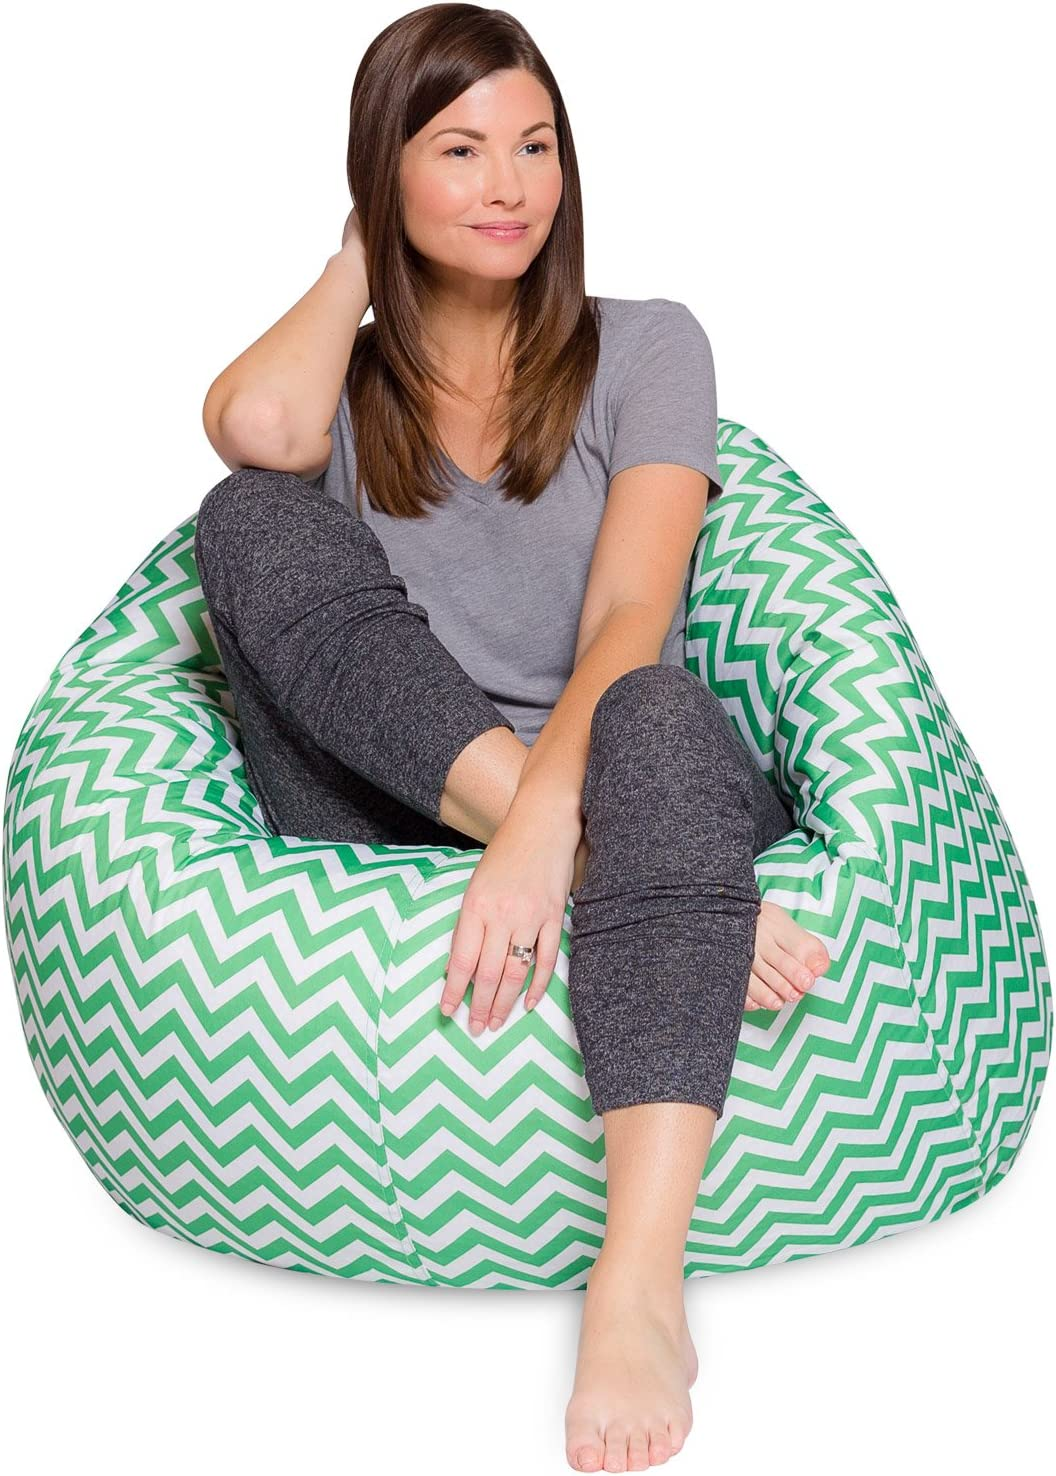 Posh Beanbags Big Comfy Bean Bag Posh Large Beanbag Chairs with Removable Cover for Kids, Teens and Adults Polyester Cloth Puff Sack Lounger Furniture for All Ages, 48in Extra, Chevron Green and White